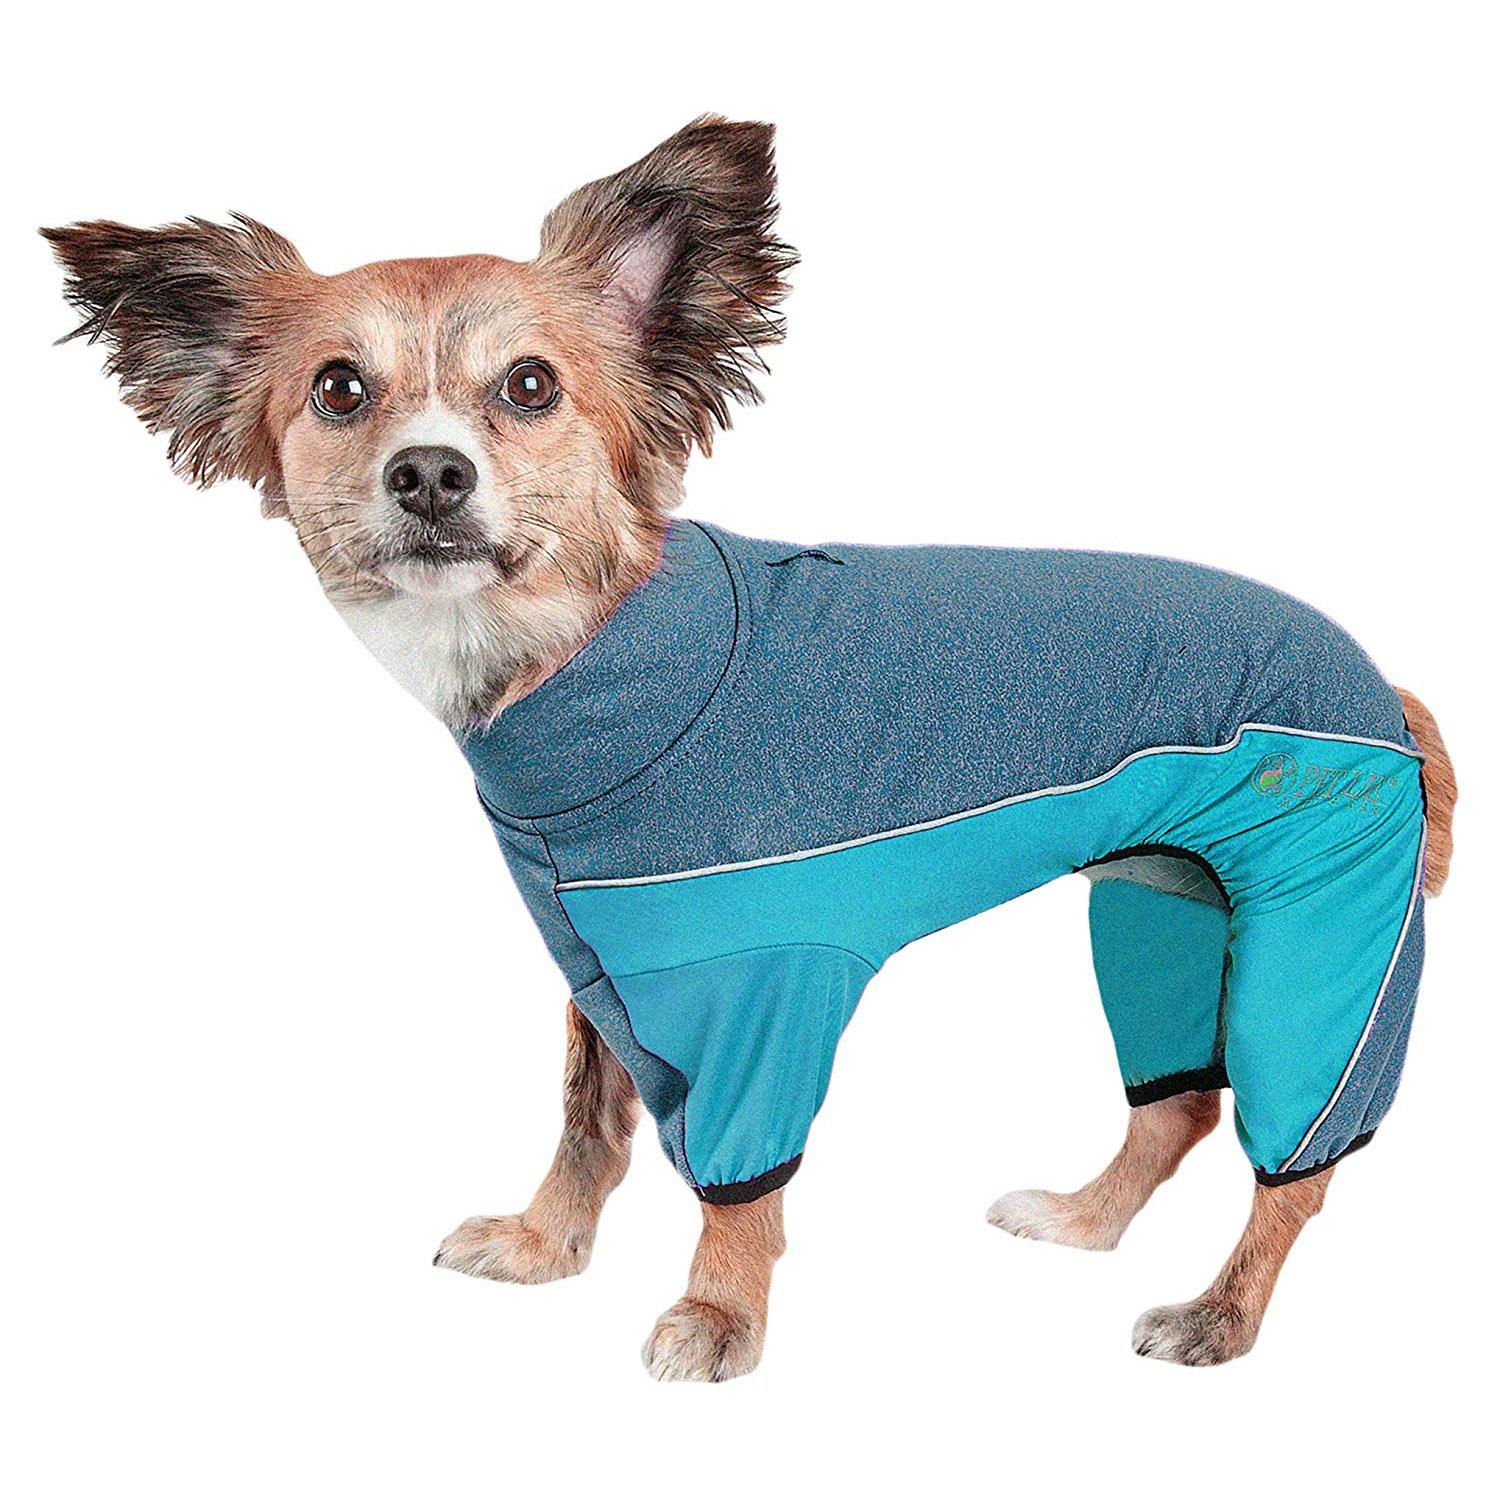 Pet Life ACTIVE 'Chase Pacer' Performance Full Body Dog Warm Up - Blue and Turquoise